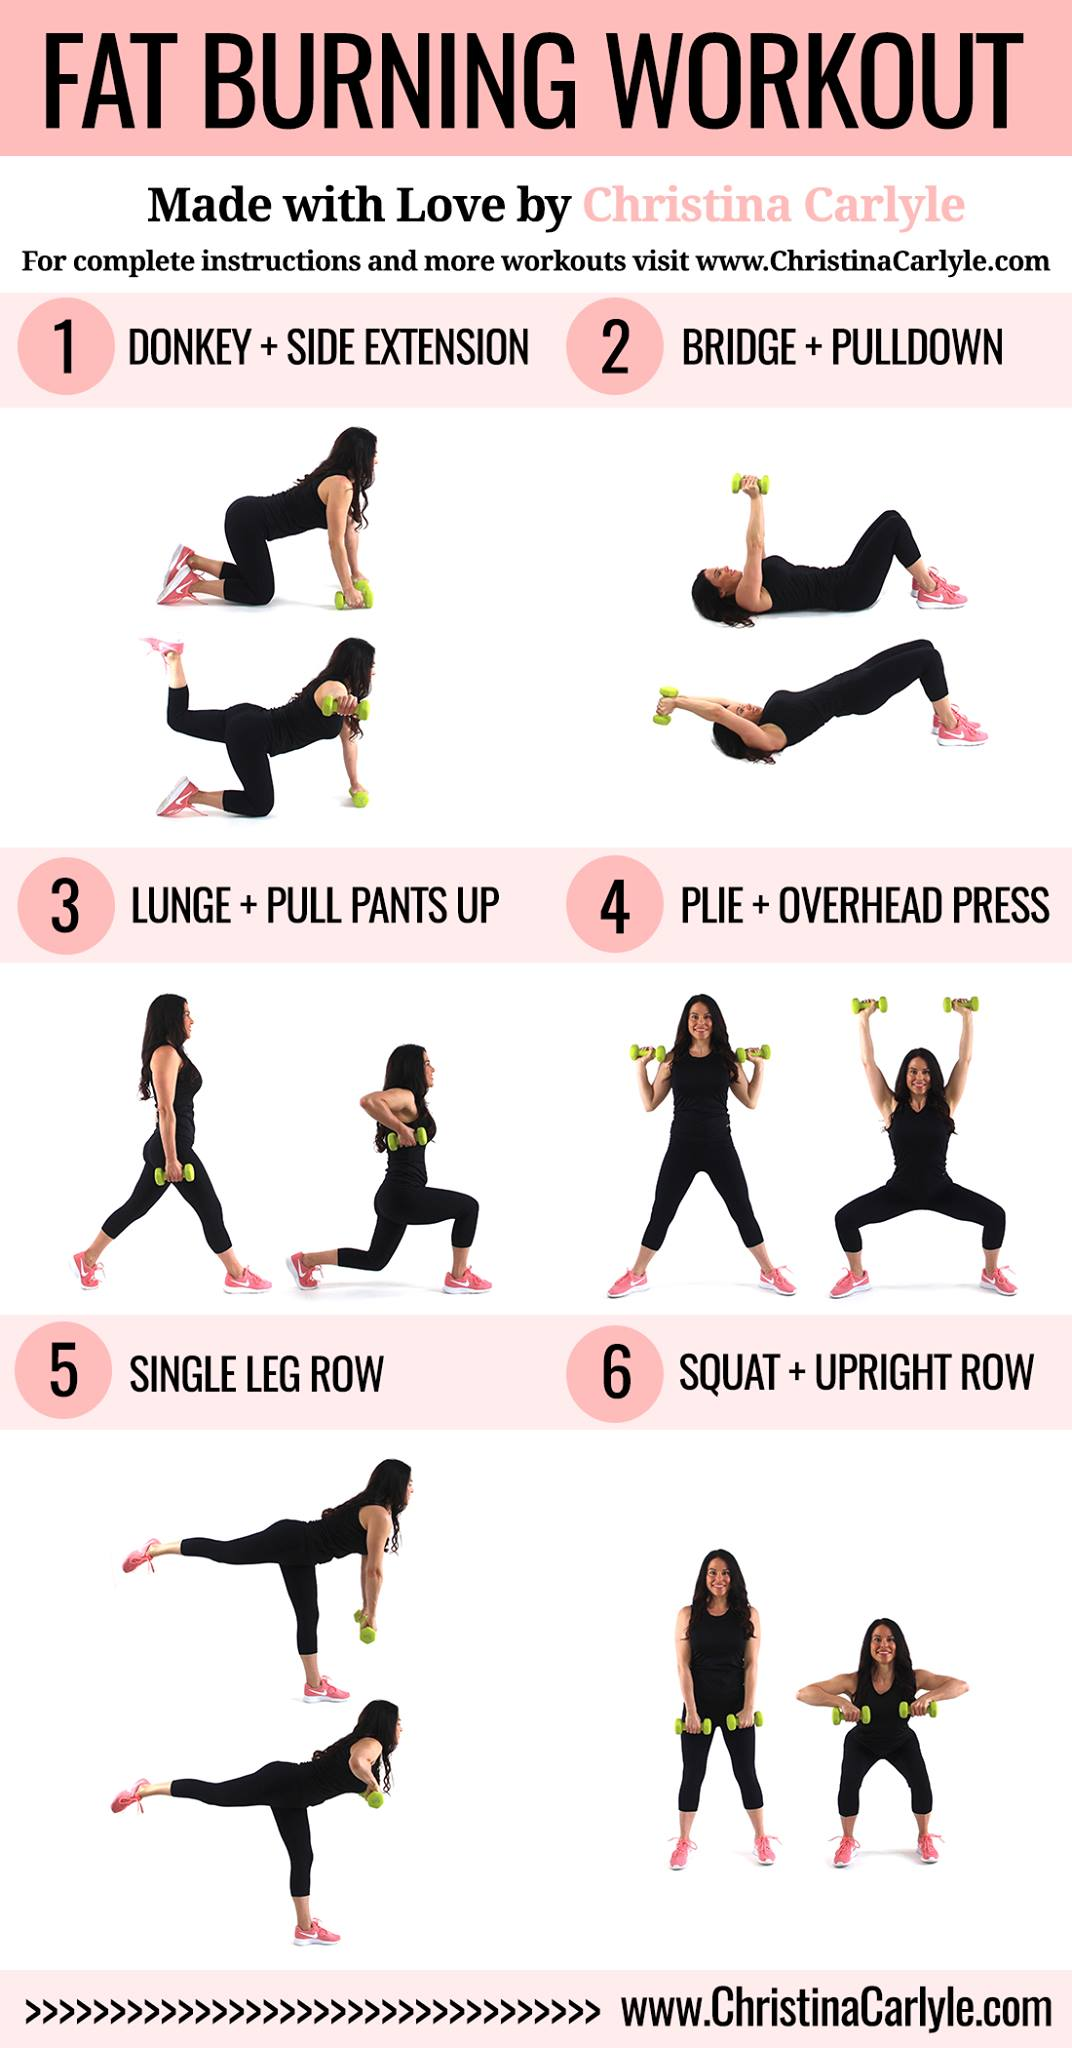 fat burning workout | This fat burning workout burns calories quickly and will help you burn fat faster.  It combines low impact exercises so you can do this fat burning workout at home.  This workout is perfect for busy mom's.